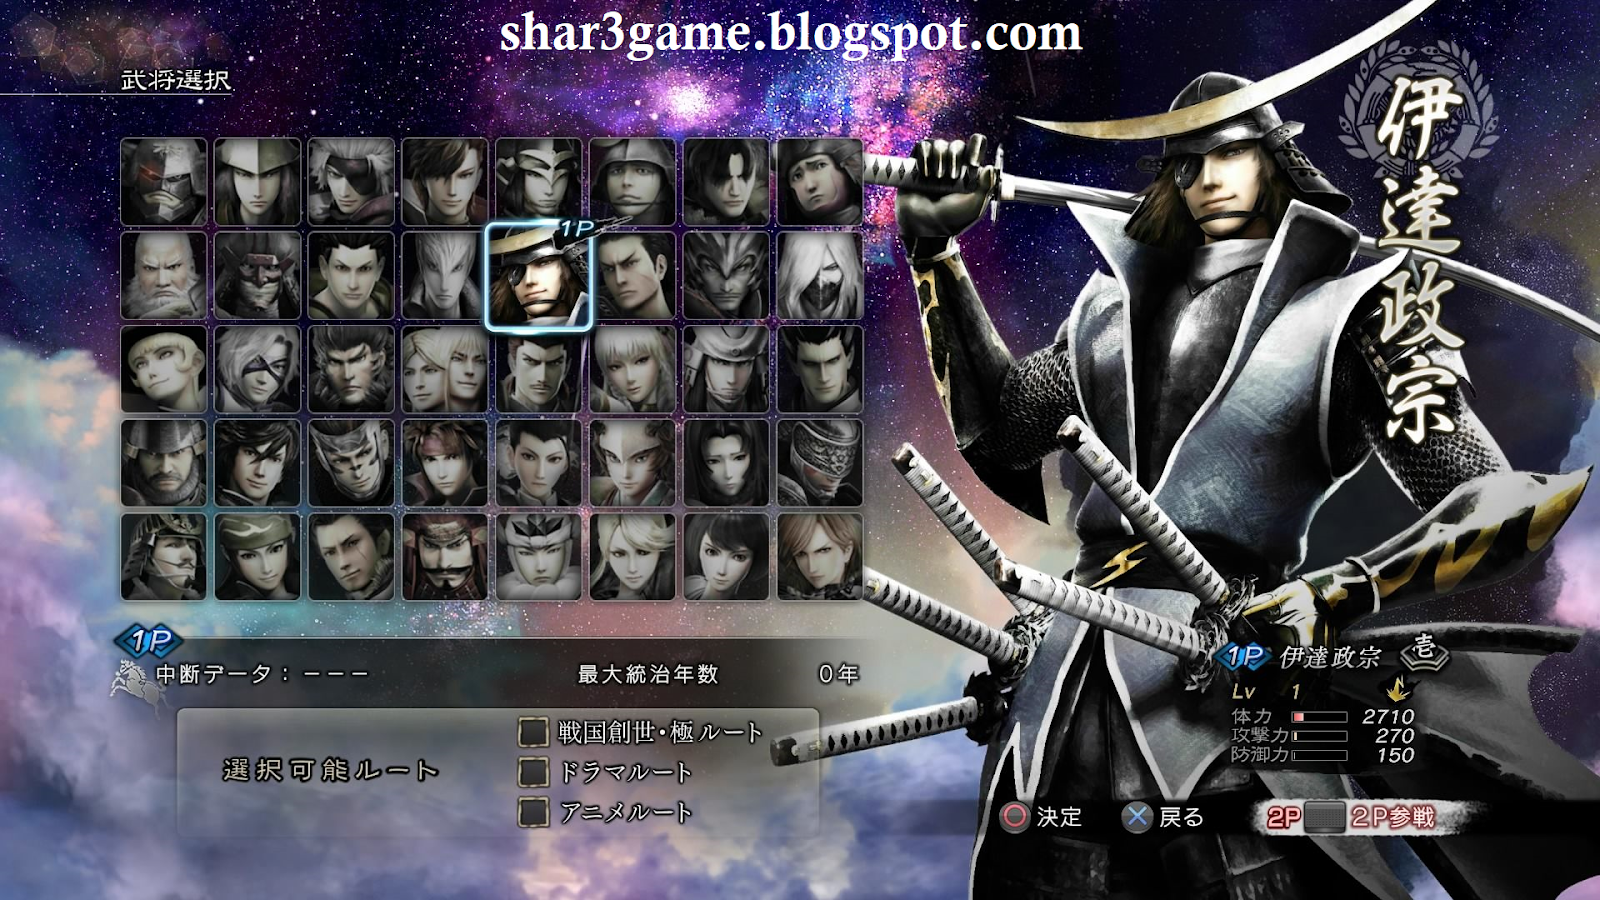 SHAR3GAME - Free Download Game + DLC PKG PS3: Sengoku Basara 4